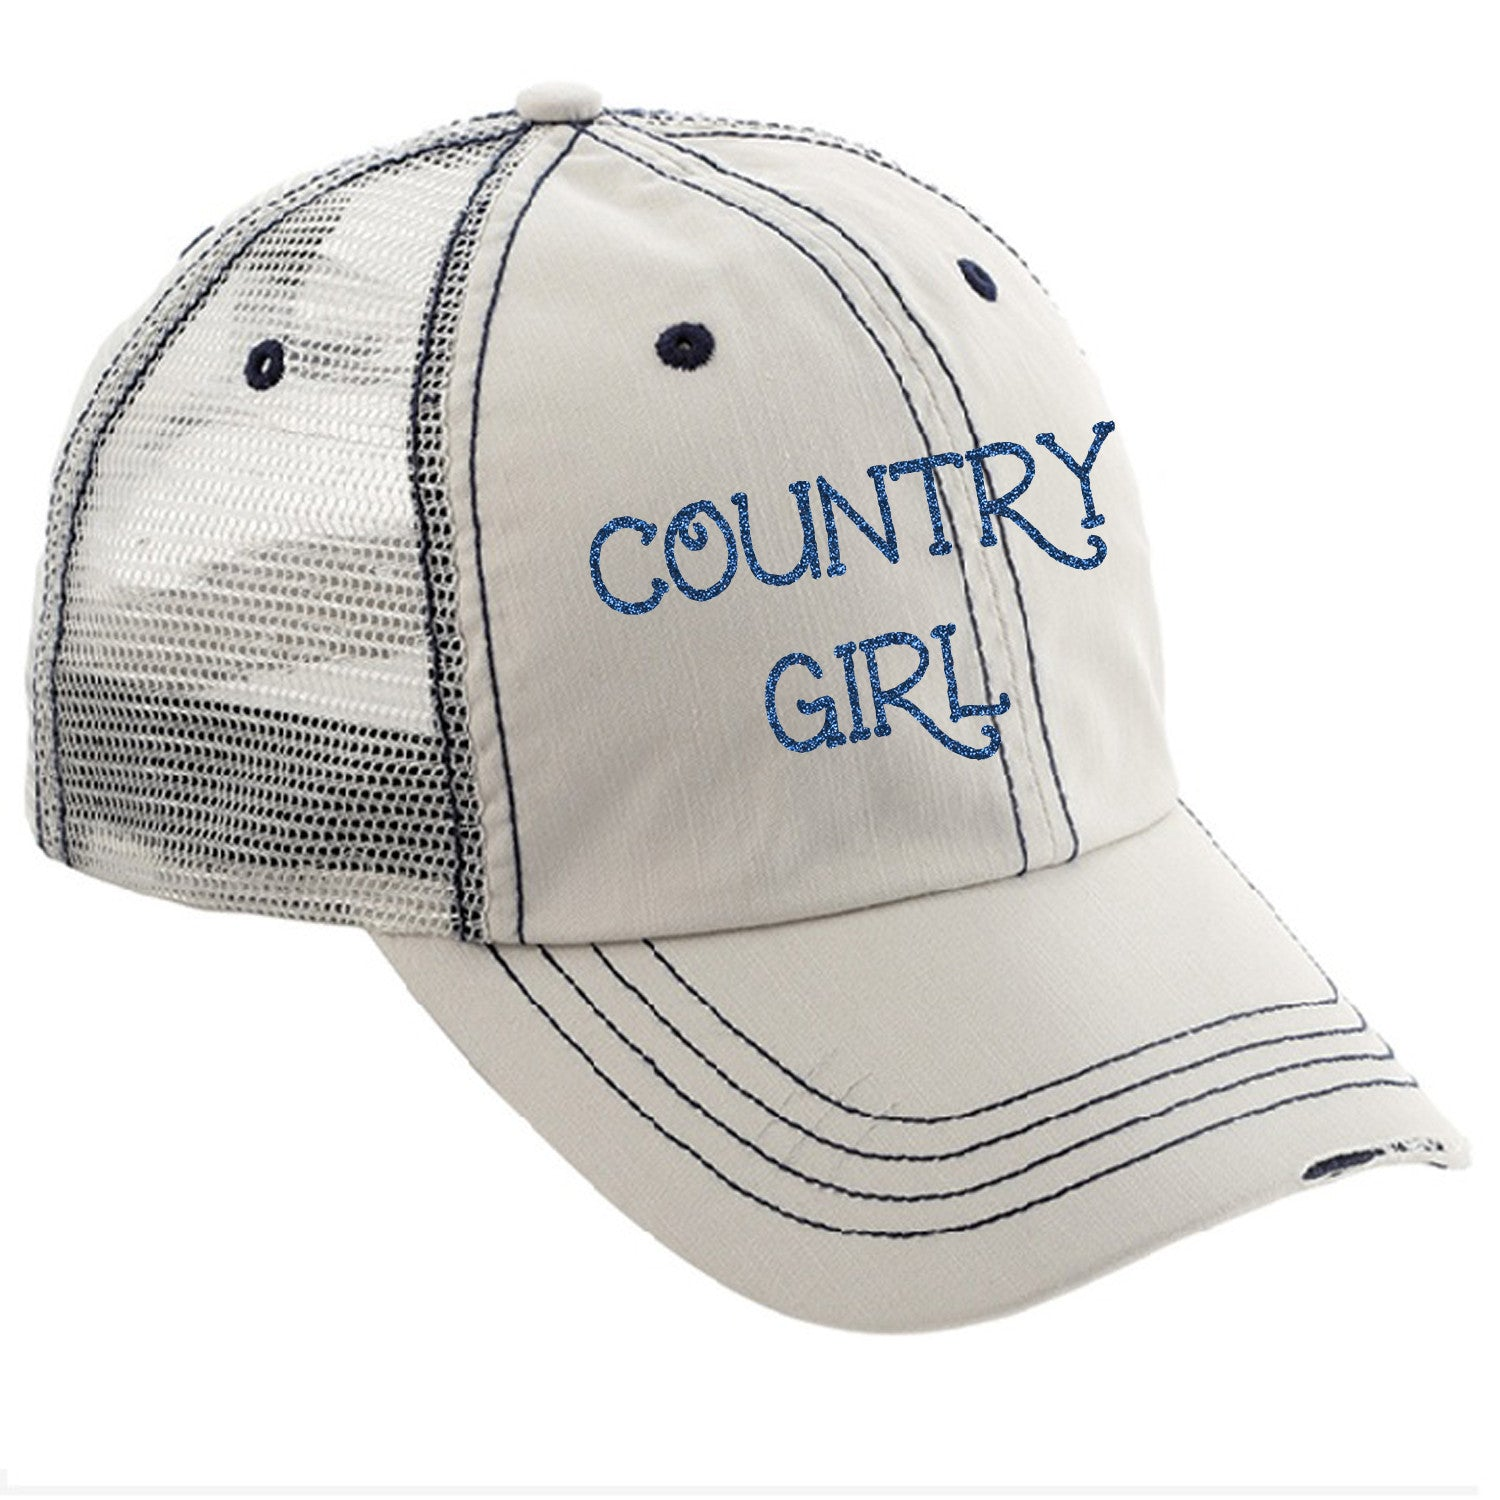 Country Girl Distressed Ladies Trucker Hat – A Dena Accents b661343c760